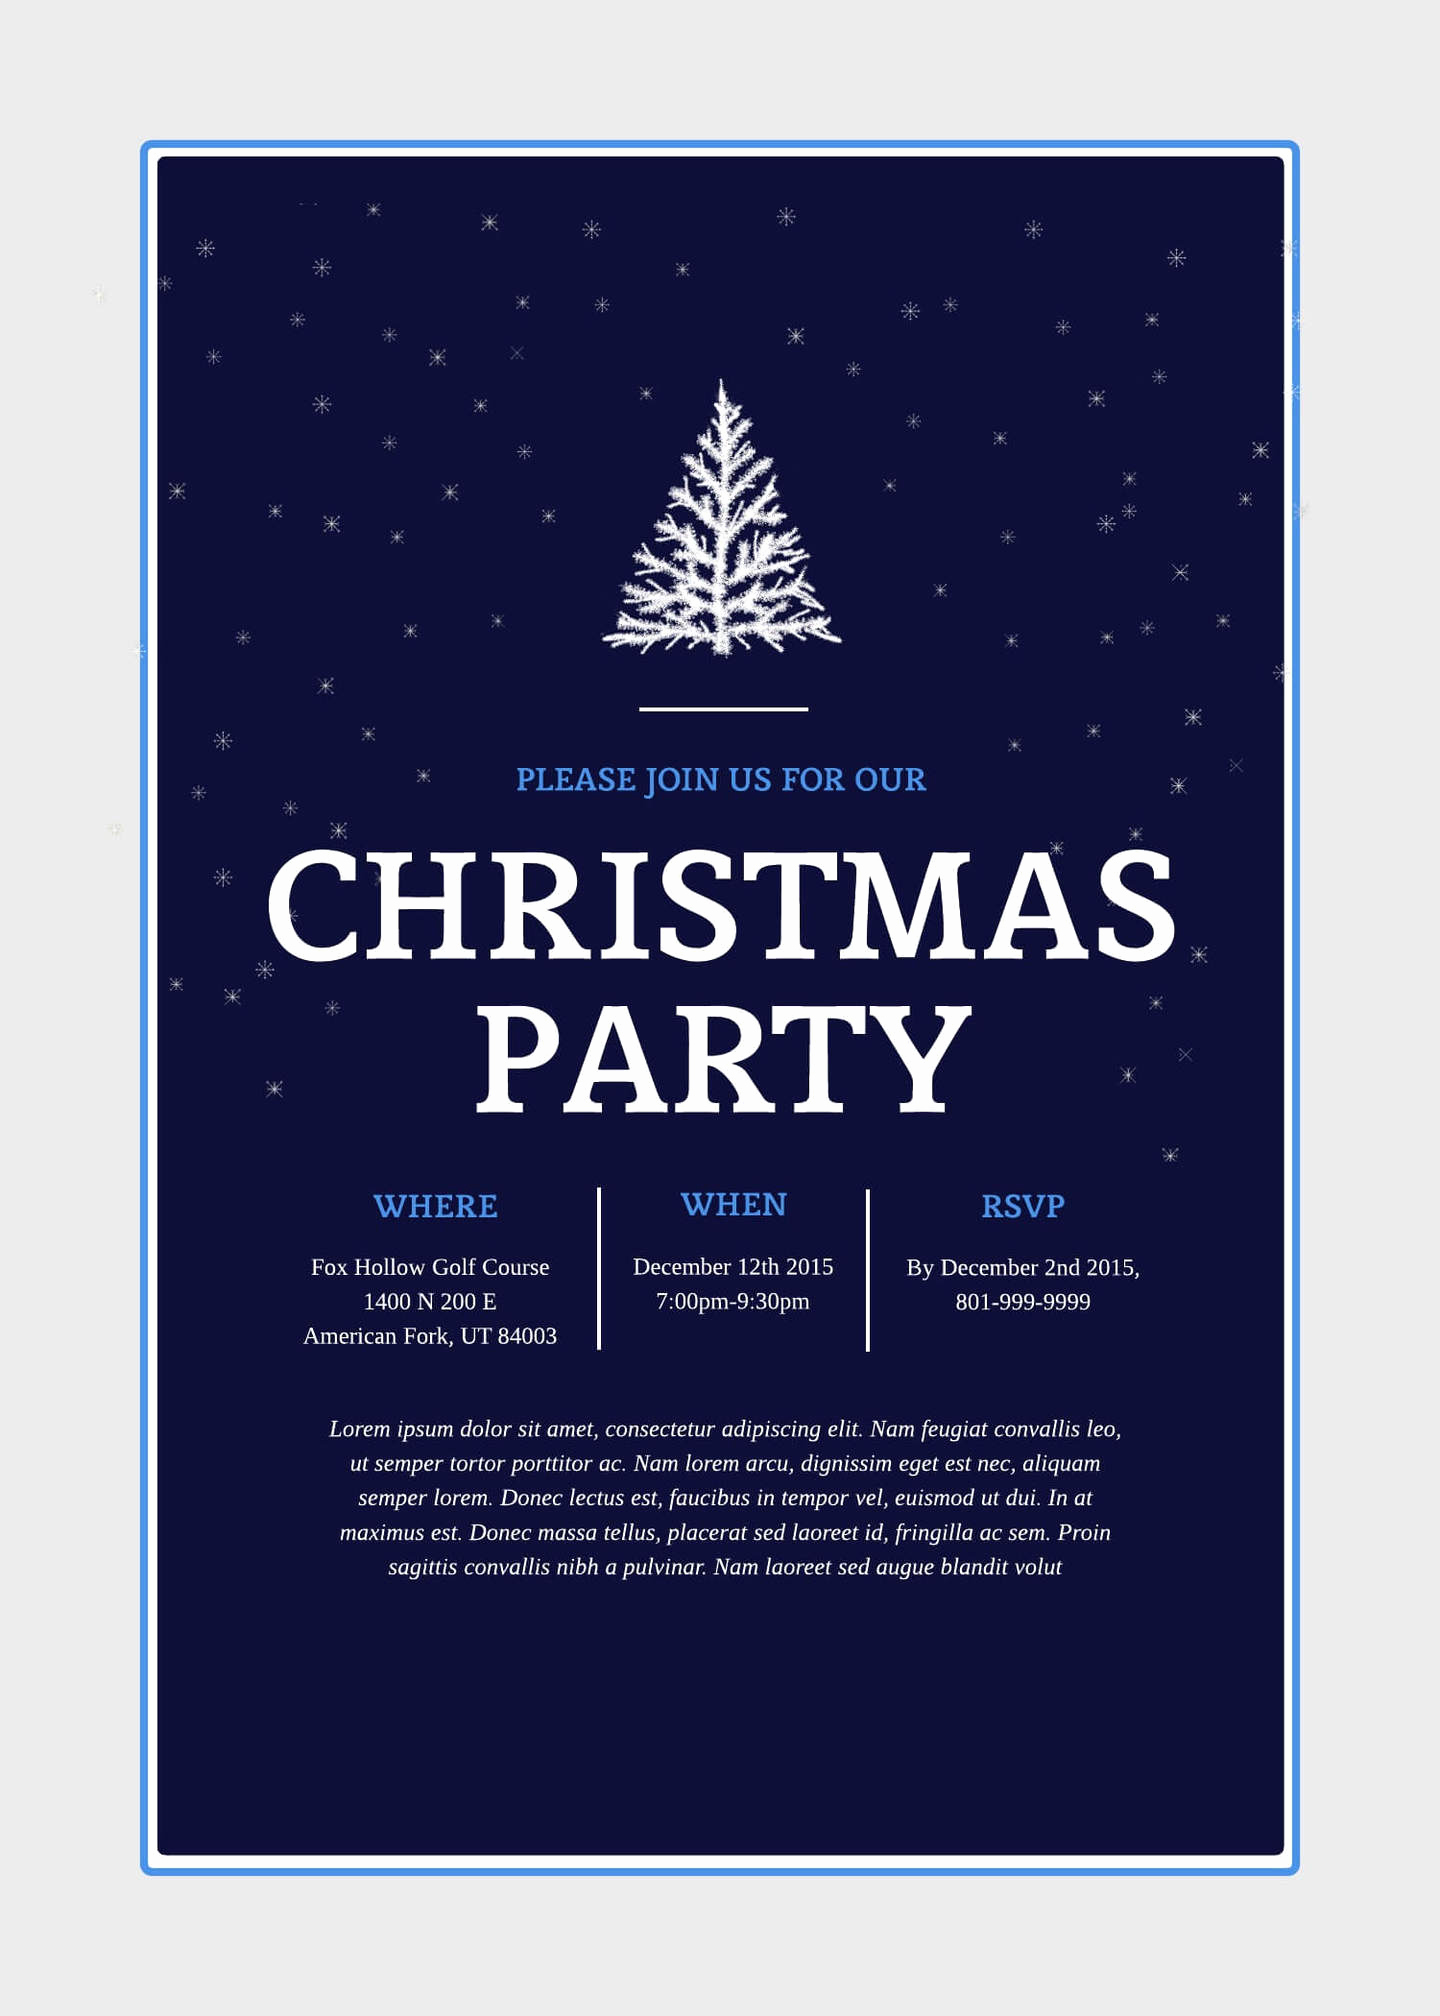 Free Christmas Party Invitation Templates Inspirational Print and Win Holiday Sweepstakes